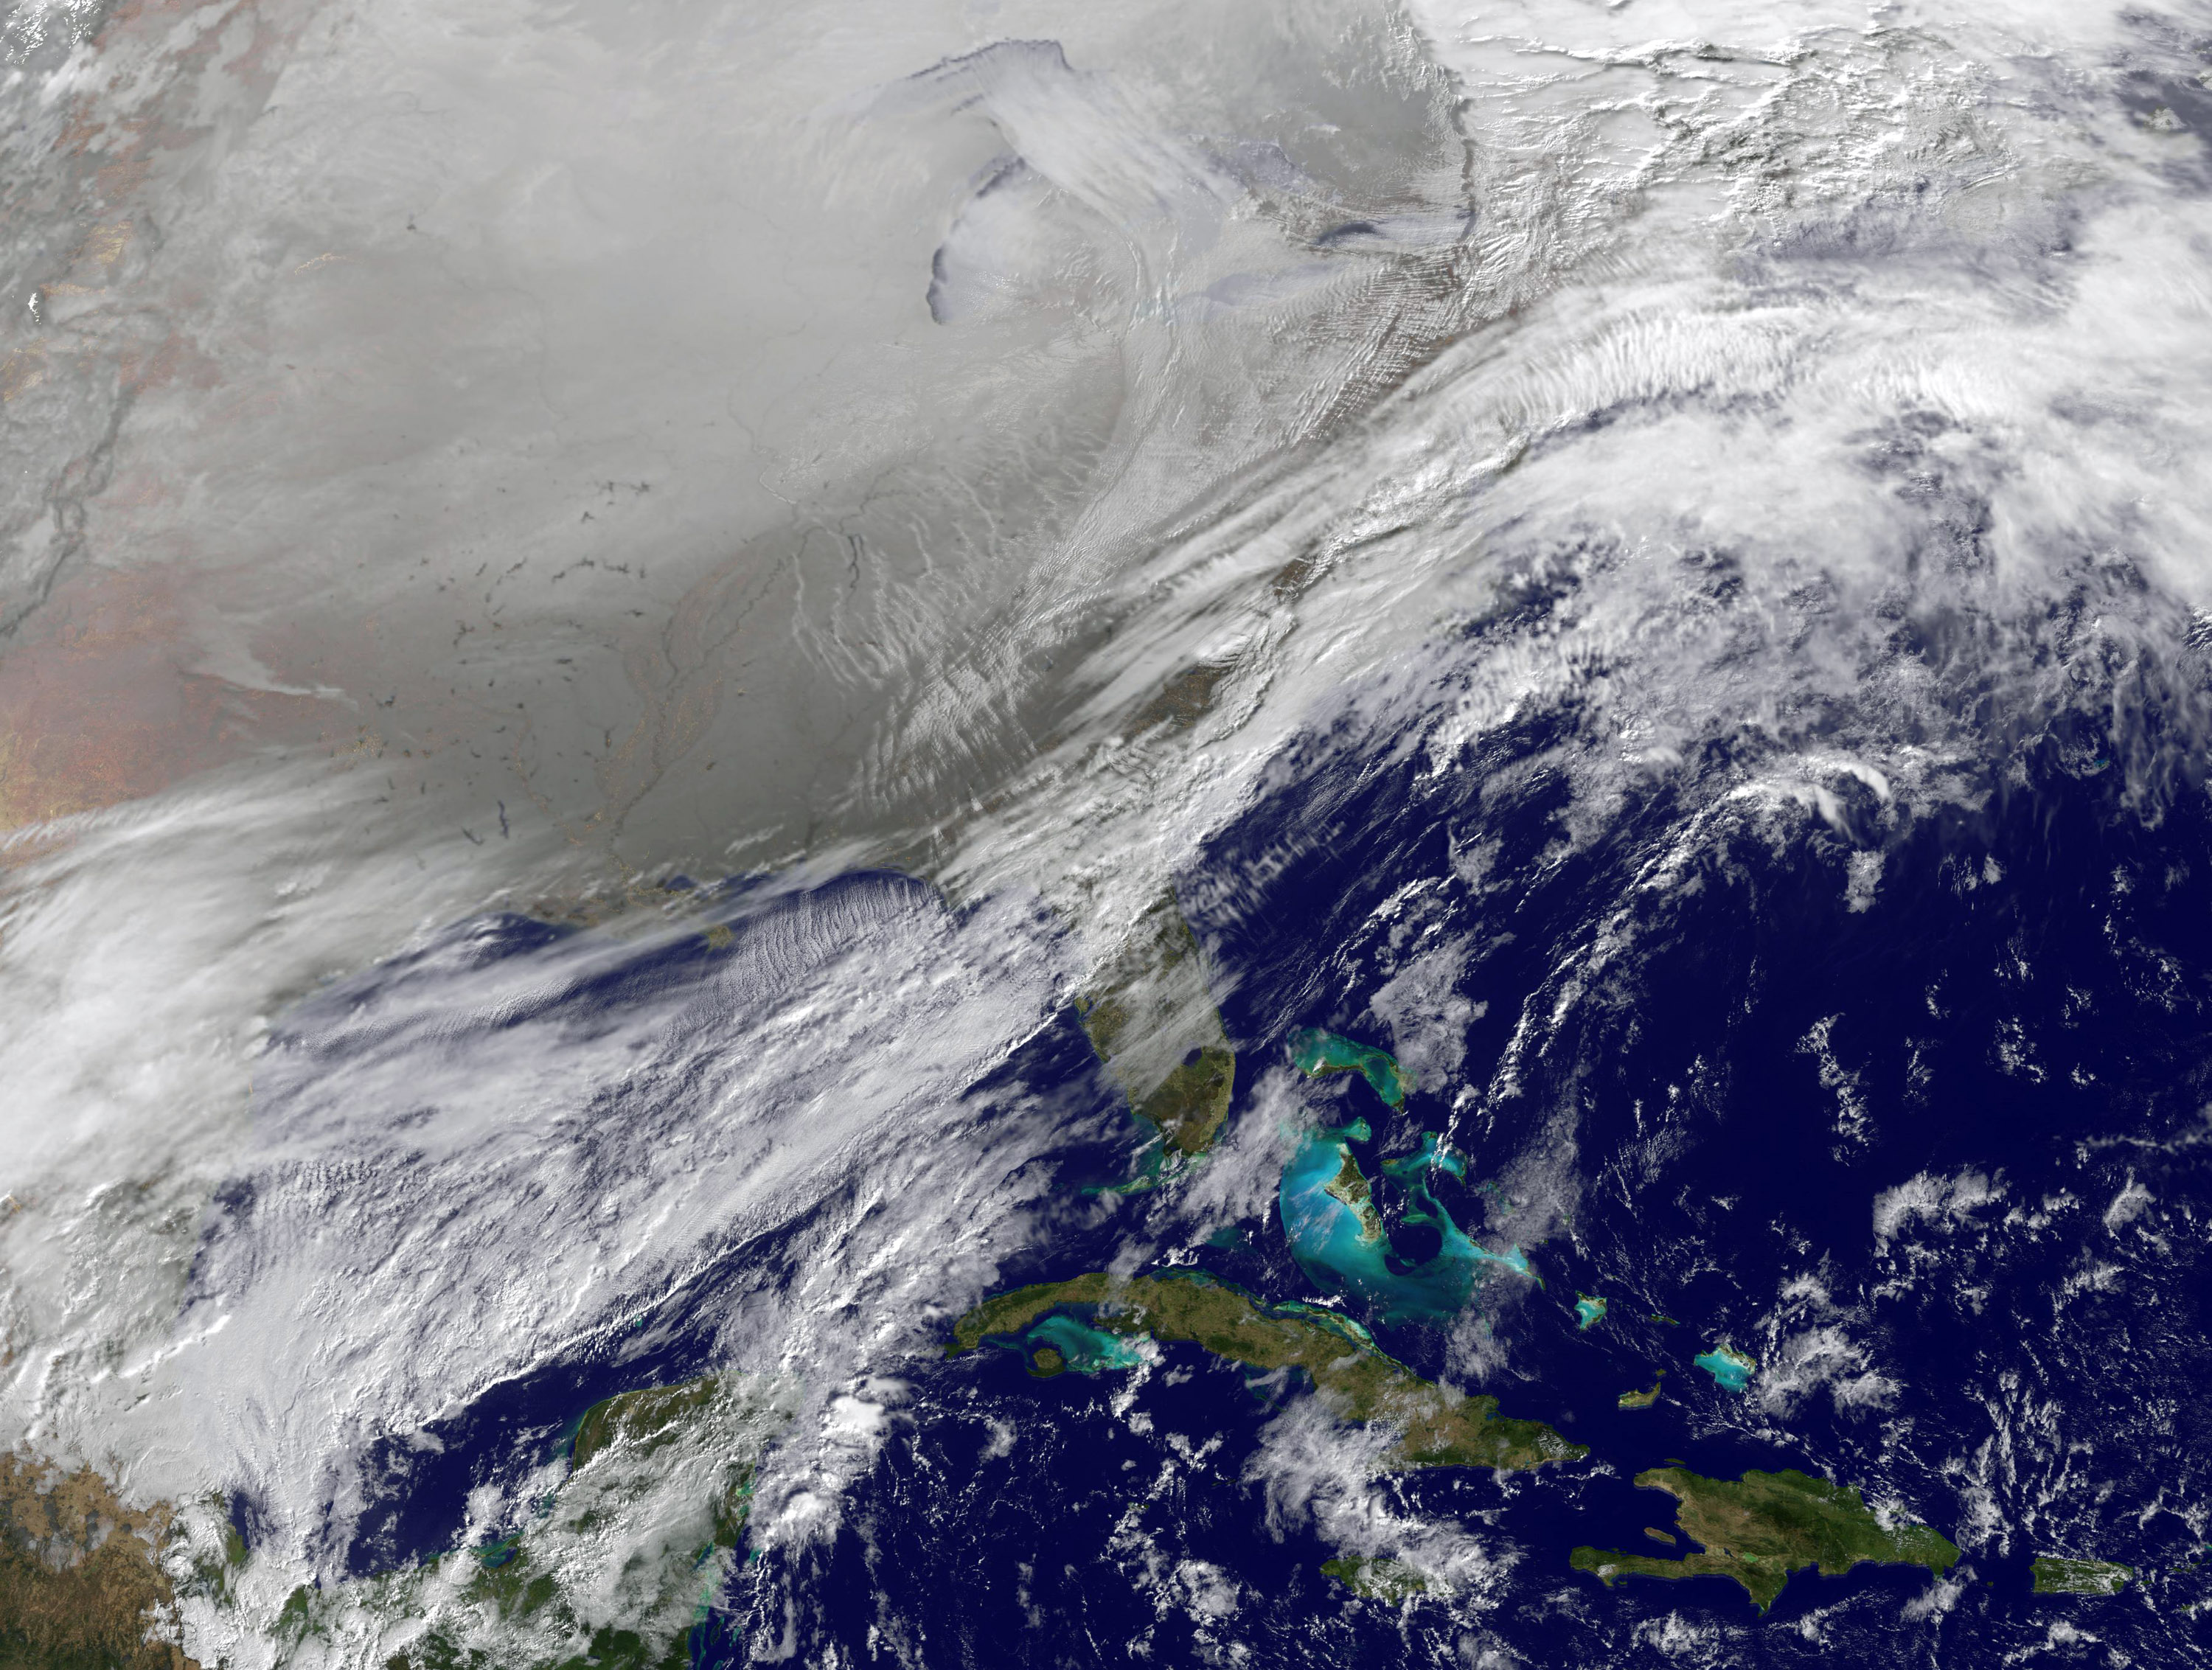 In this satellite handout image provided by National Oceanic and Atmospheric Administration (NOAA), shows the entry of a large area of low pressure, from the Polar Vortex, into the Northern U.S. January 6, 2014. (Getty Images)